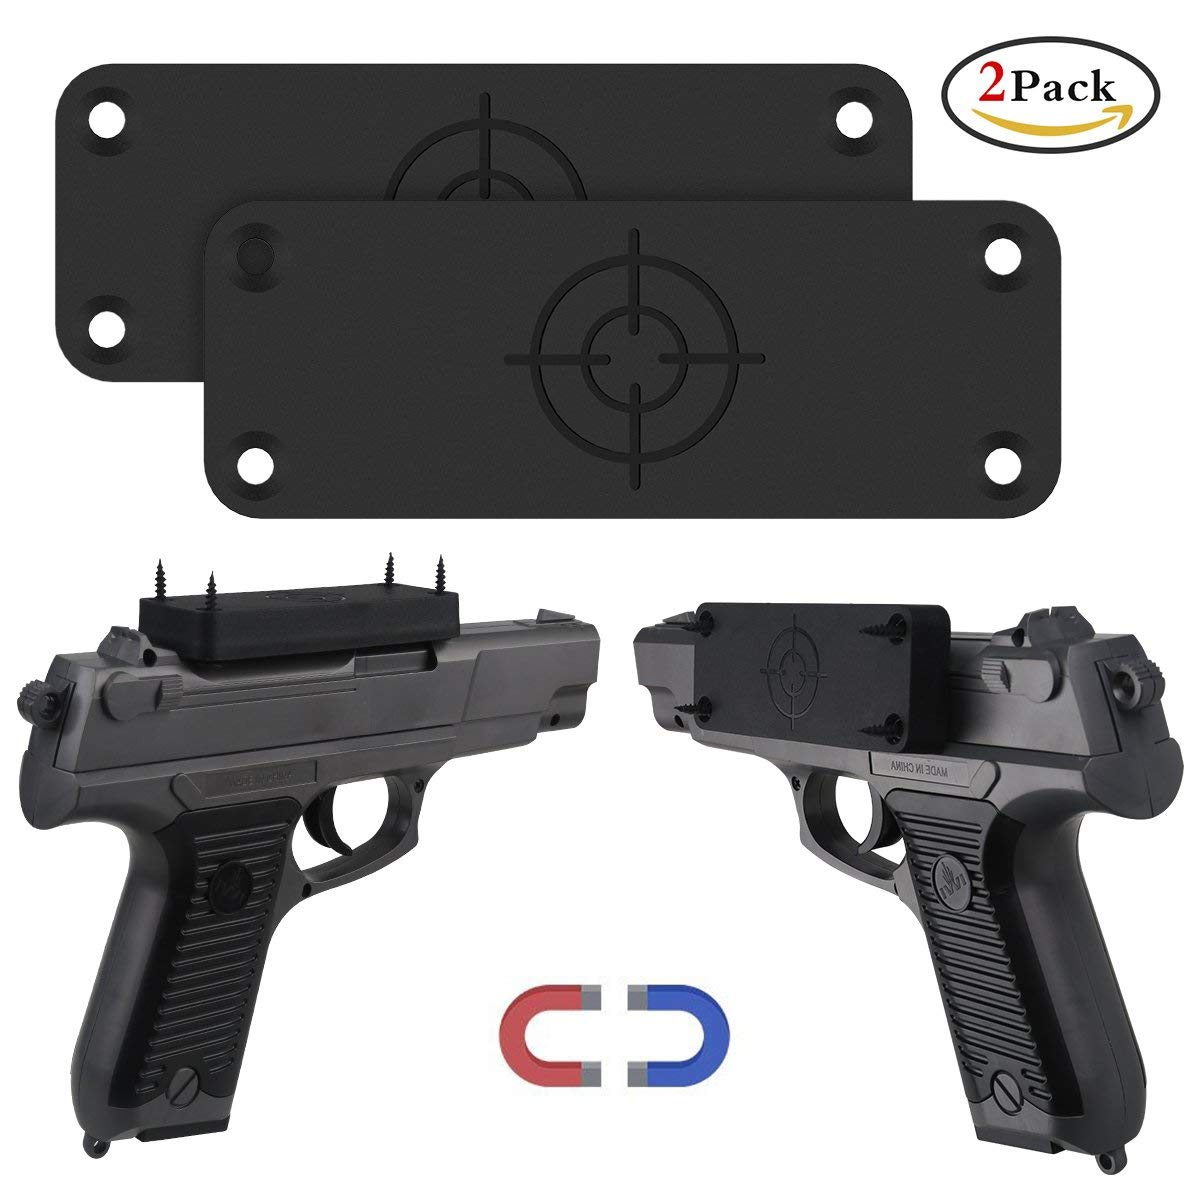 Gun Magnet Mount for Car and Home, 2-Pack, Magnetic Gun Mount with Rubber Coated 42 Lbs Rated for Handgun, Shotgun, Rifle, Pistol - Firearm Accessory. Concealed Holder in Home, Office, Truck, and Car.